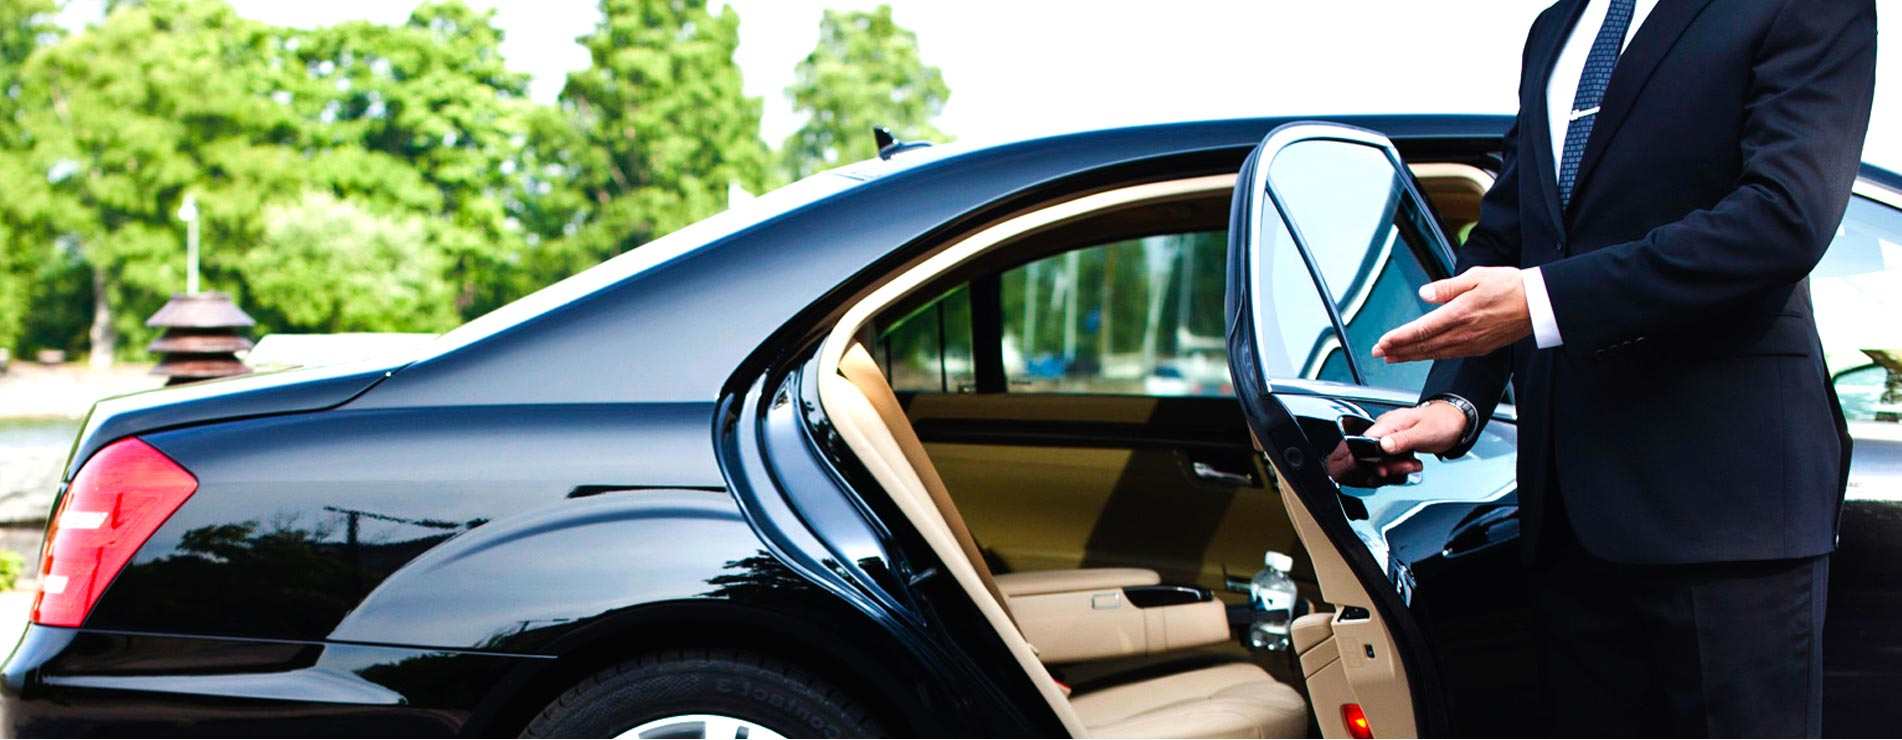 Partnering With Car Service Companies to Benefit Our Customers